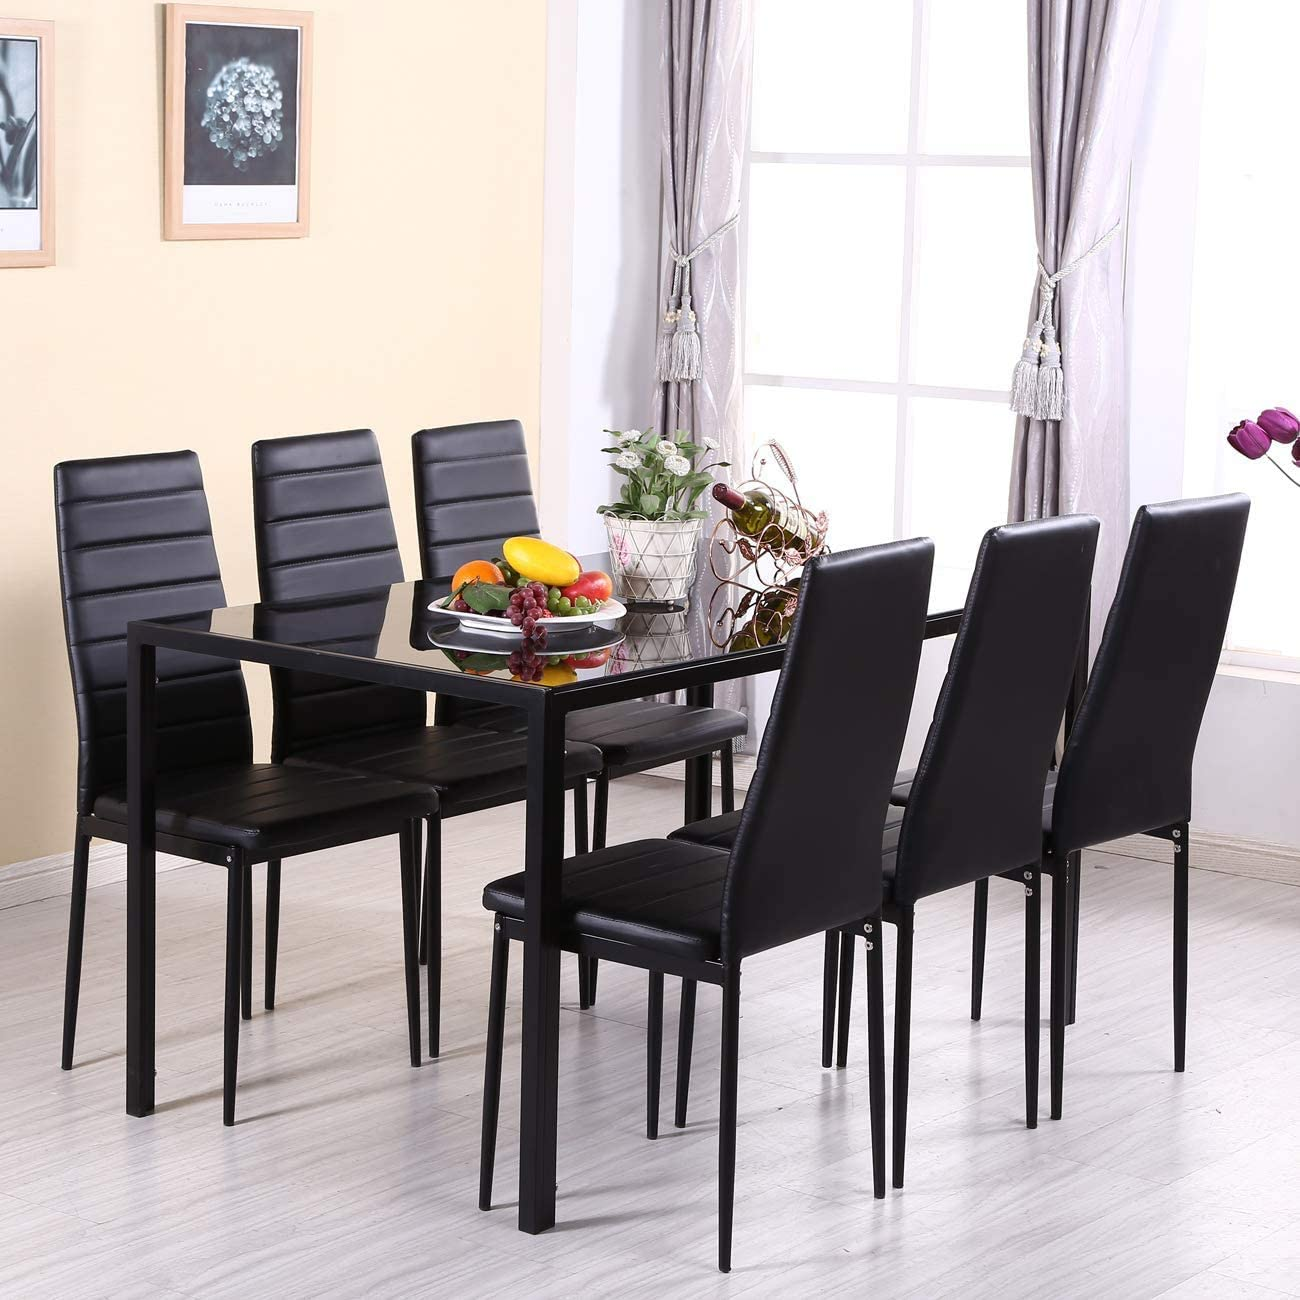 High Back Dining Chairs Set of 4, Velvet Padded Dining Room Chairs for Kitchen, Lounge, Living Room Side Chairs with Chrome Legs, Grey Black Table